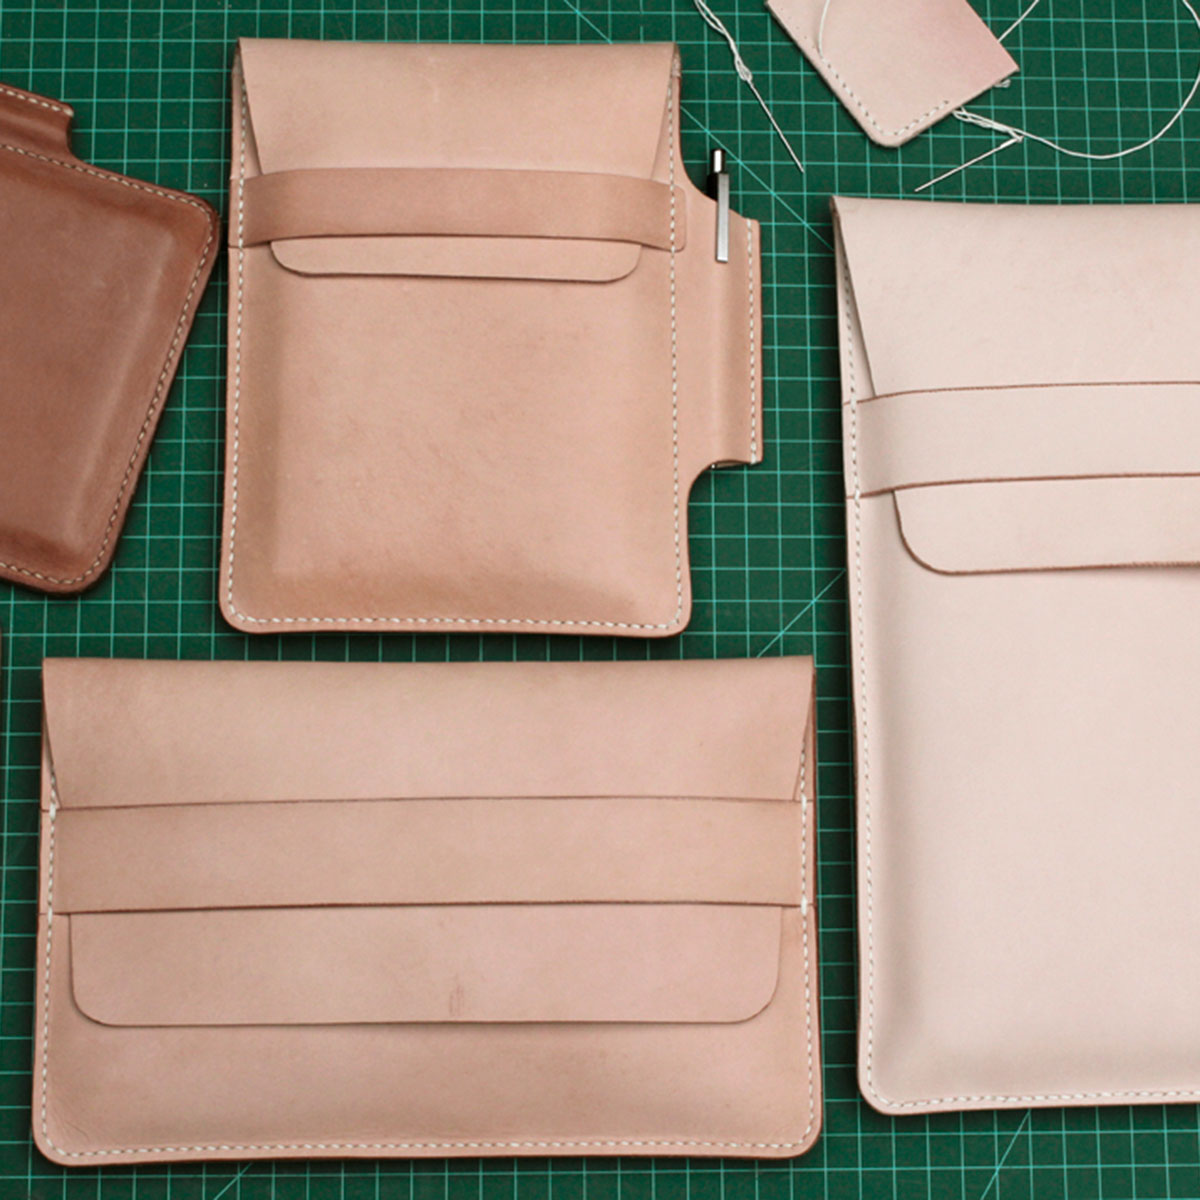 Vegetable tanned leather cases